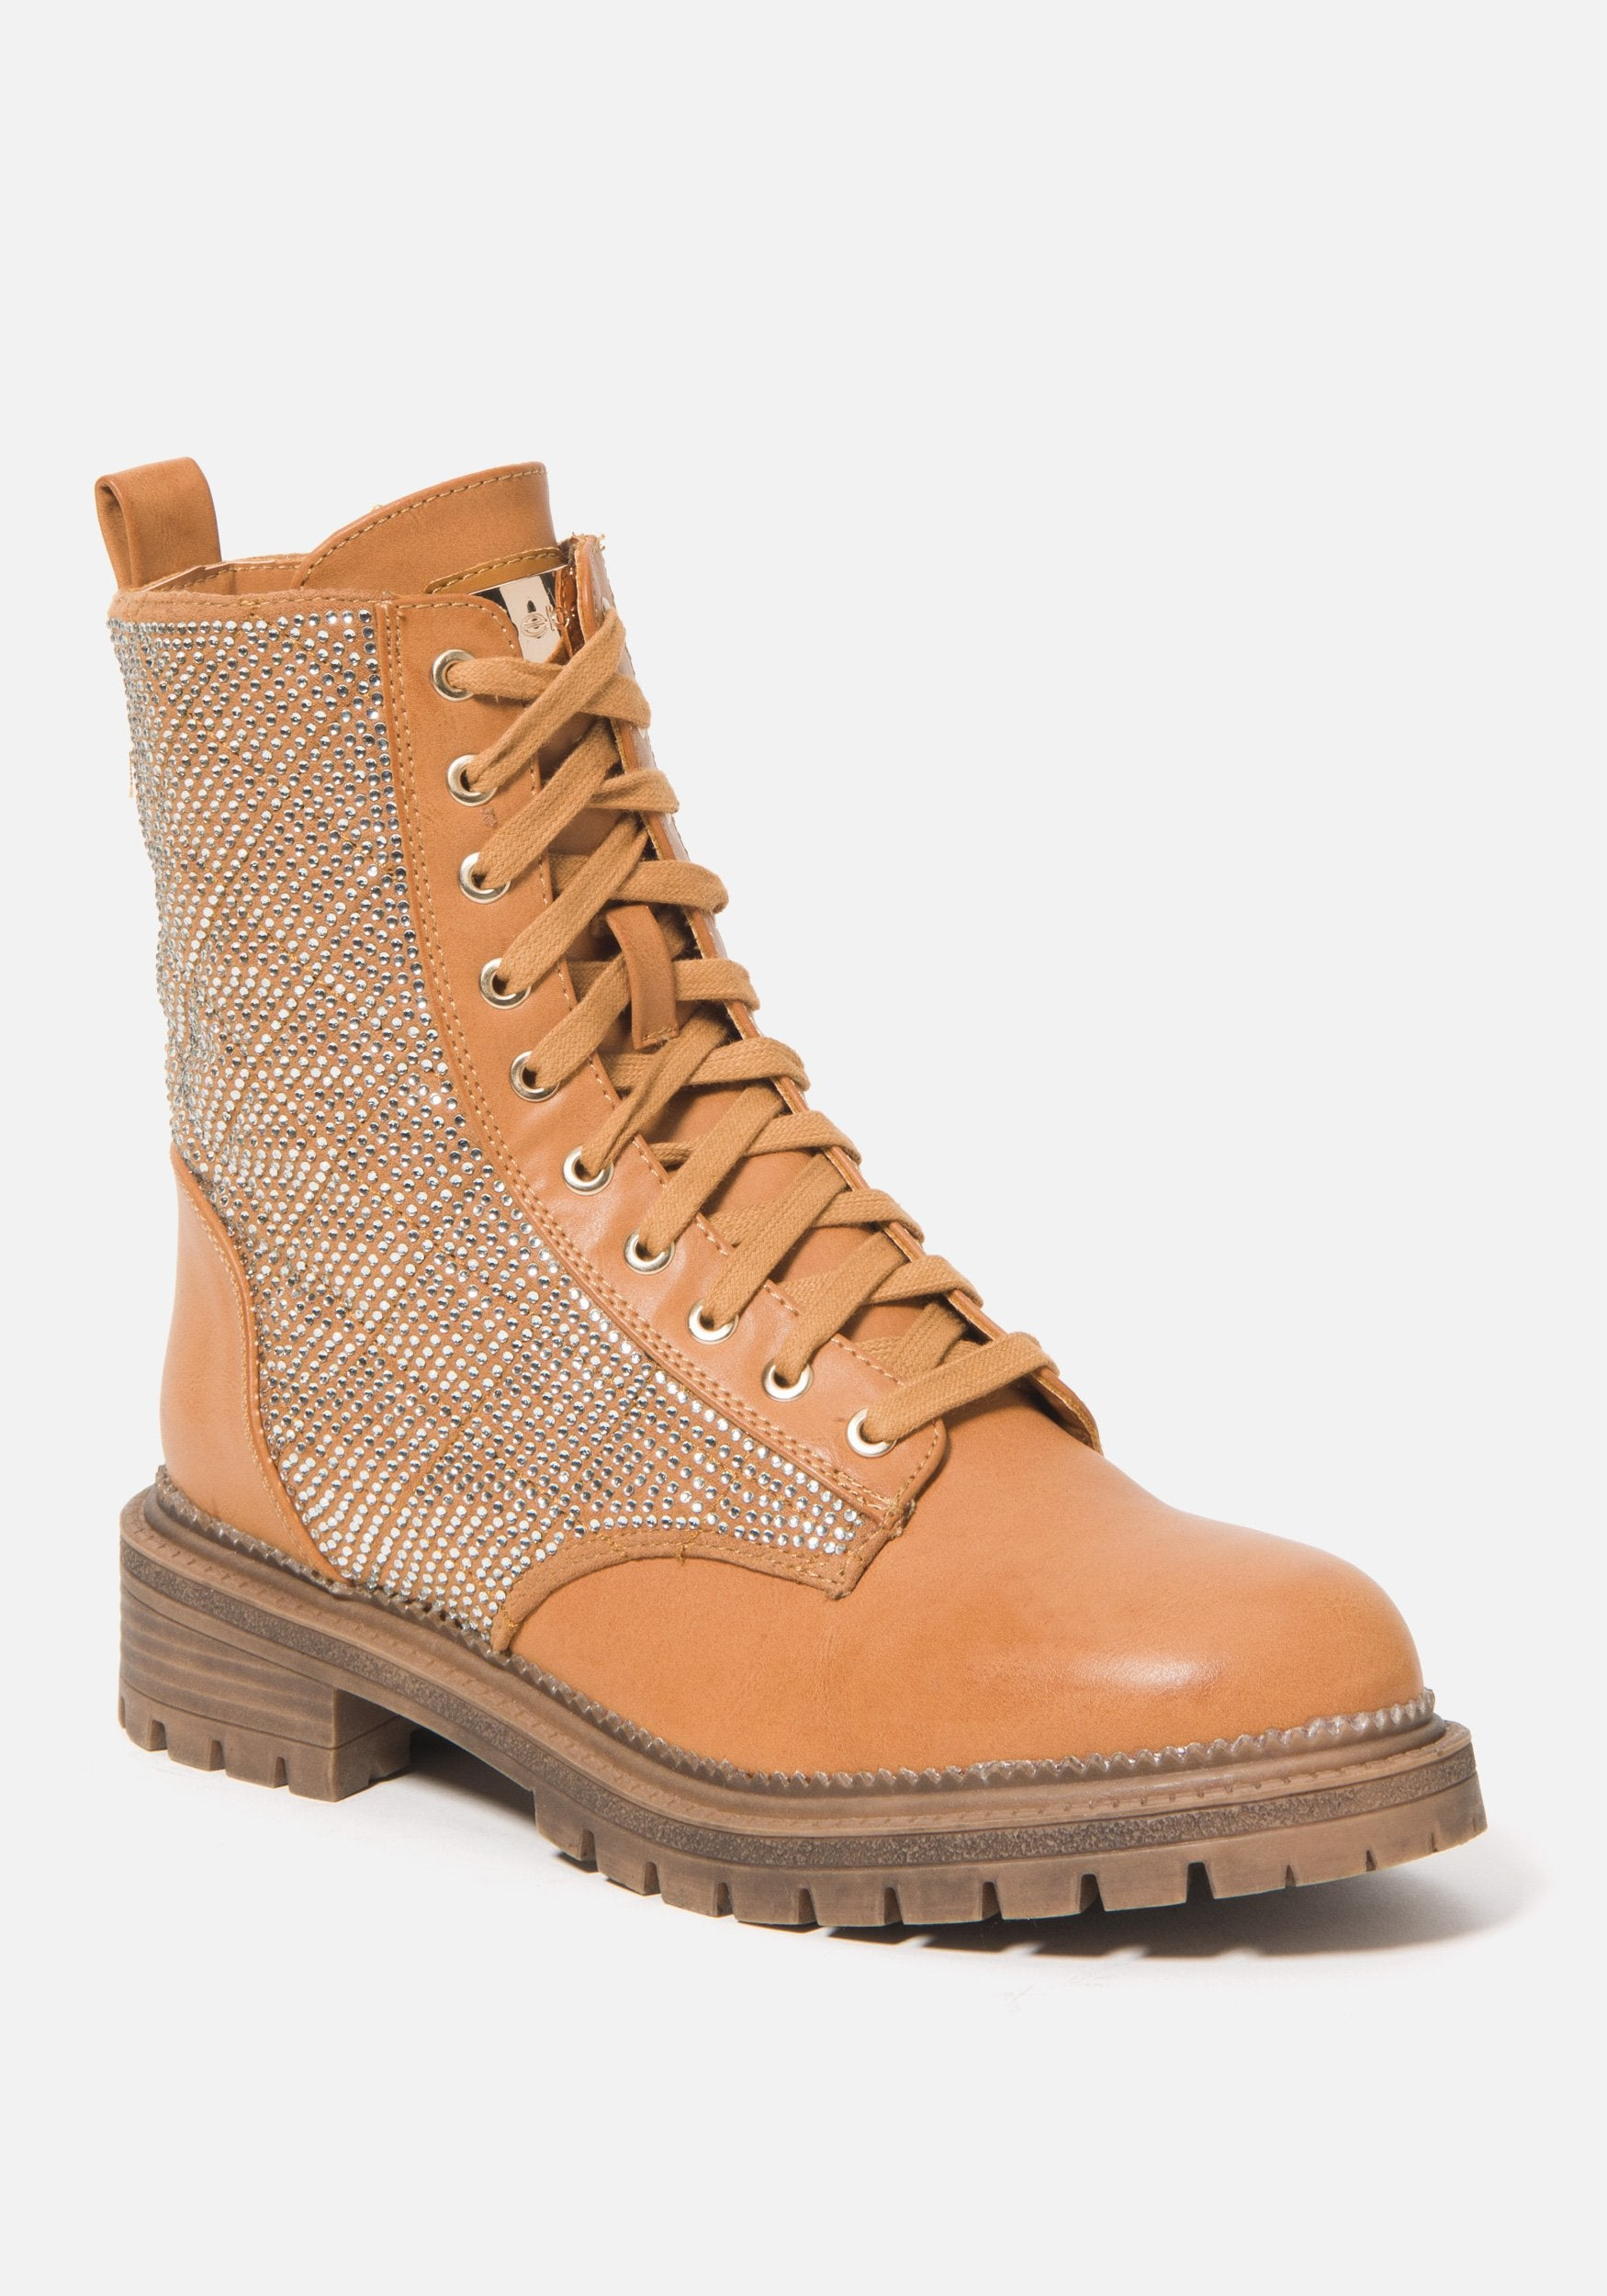 Bebe Women's Dorienne Lace Combat Boots, Size 6 in Wheat Synthetic